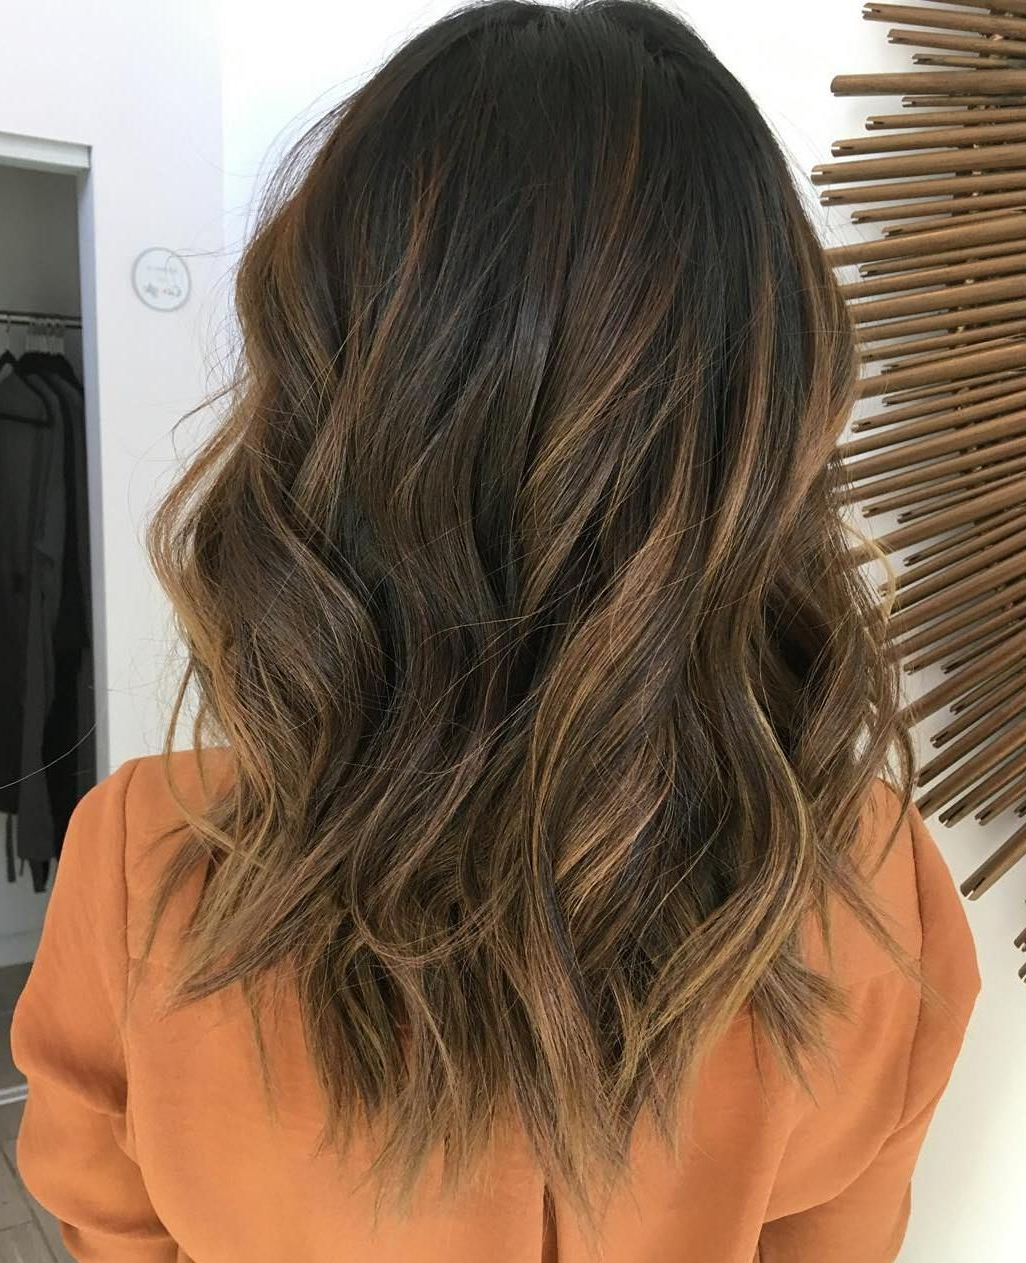 60 Balayage Hair Color Ideas With Blonde, Brown, Caramel And Red For Best And Newest Brunette Medium Hairstyles (View 5 of 20)